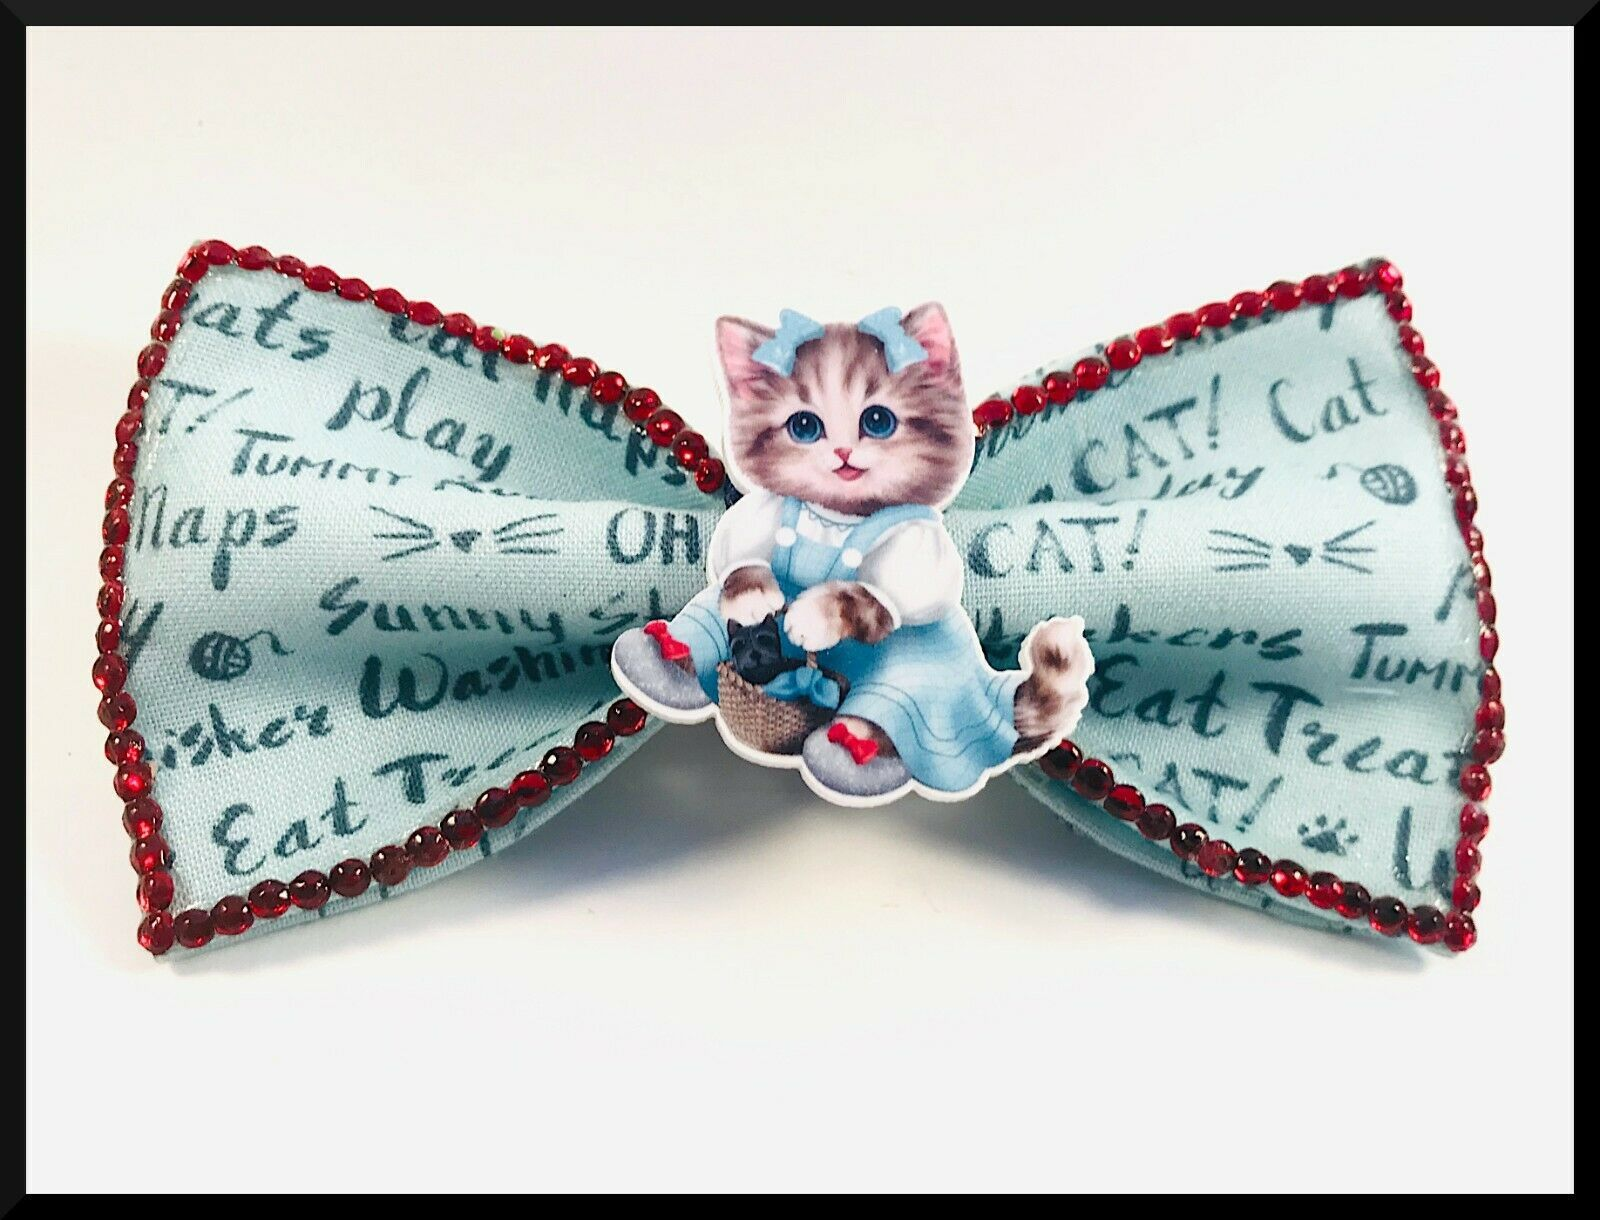 Hair Bow Handmade Cat Wizard Of Oz Dorothy Gift For Girls Birthday Present In 2020 Hair Bows Handmade Gifts For Girls